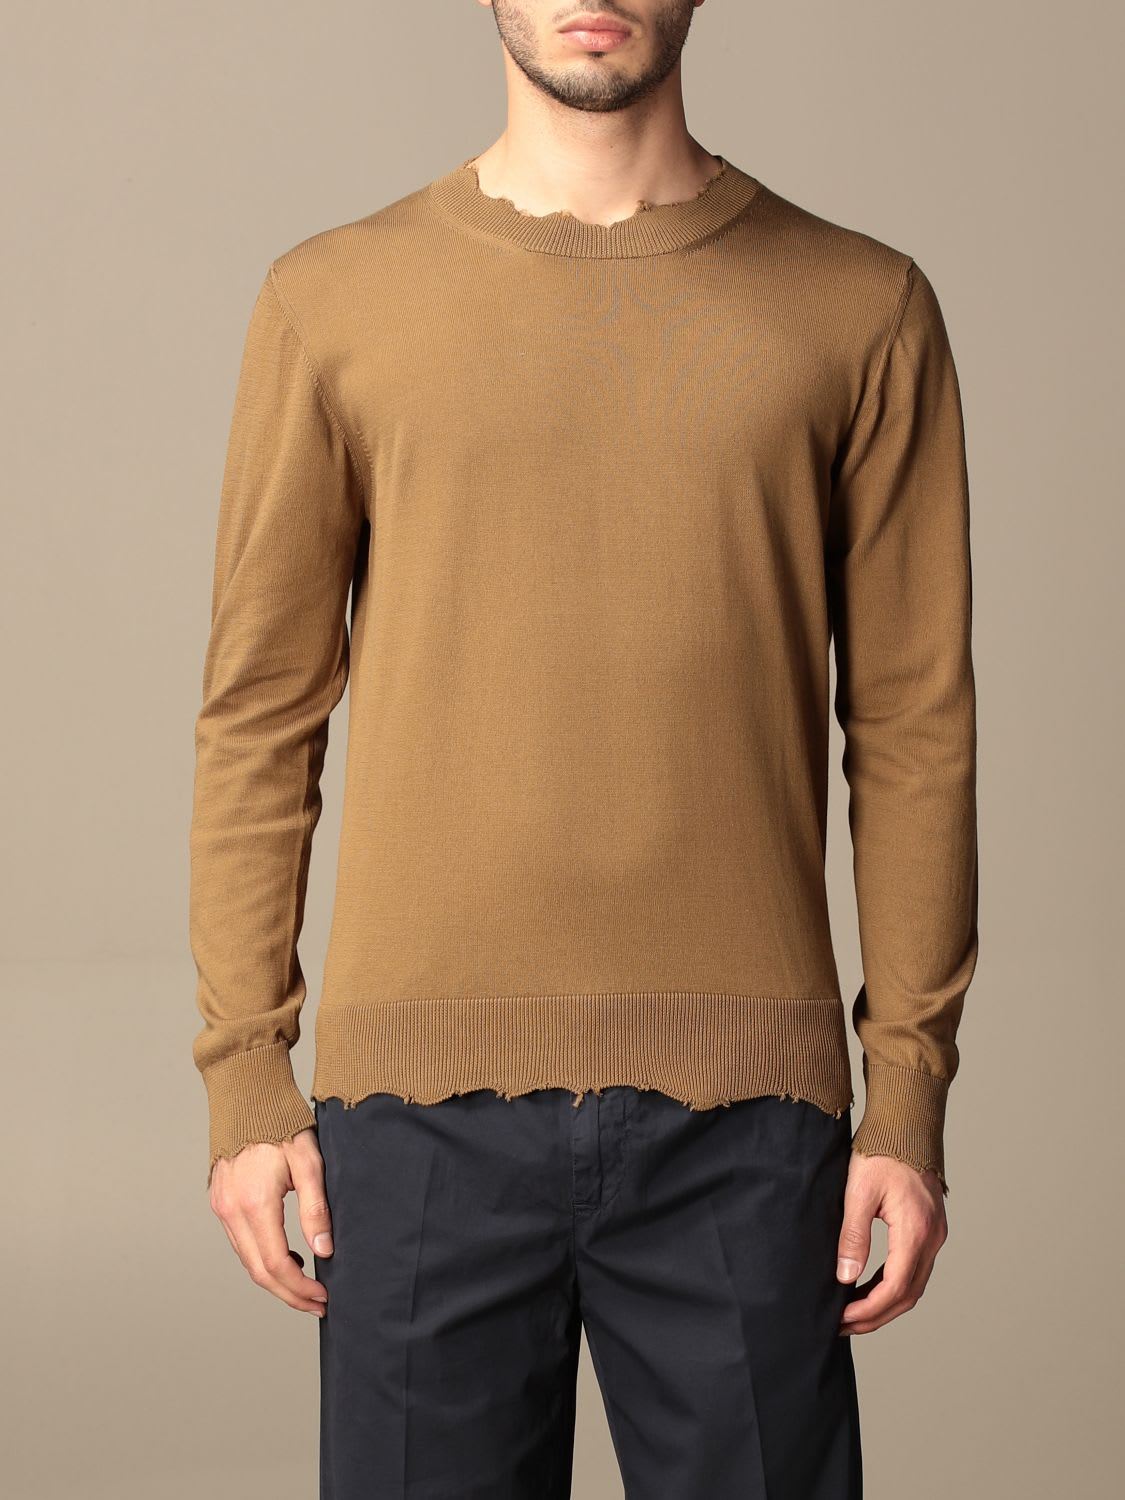 Grifoni Sweater Sweater Men Grifoni